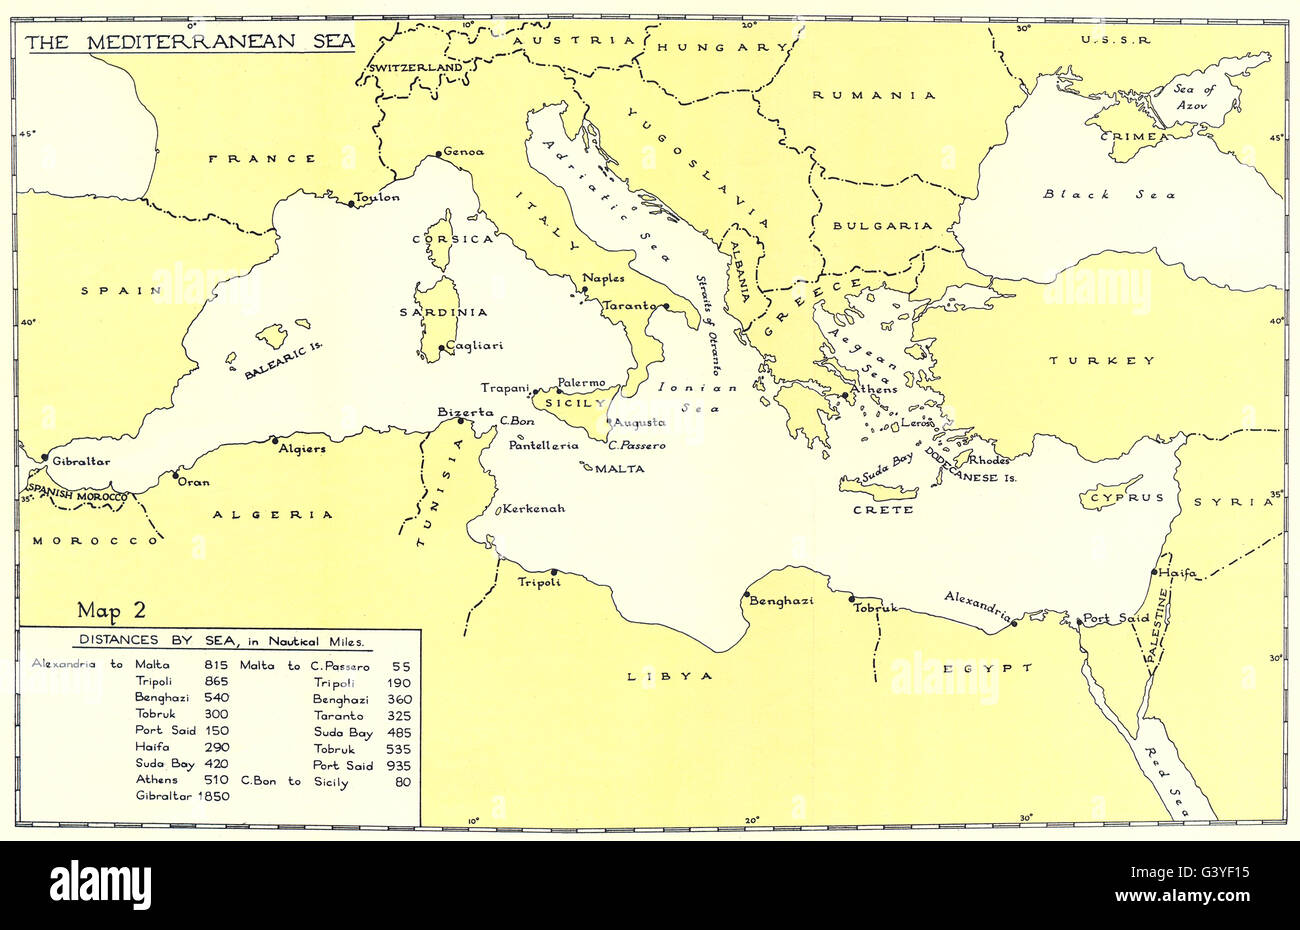 EUROPE: The Mediterranean Sea. Distances by sea from Alexandria